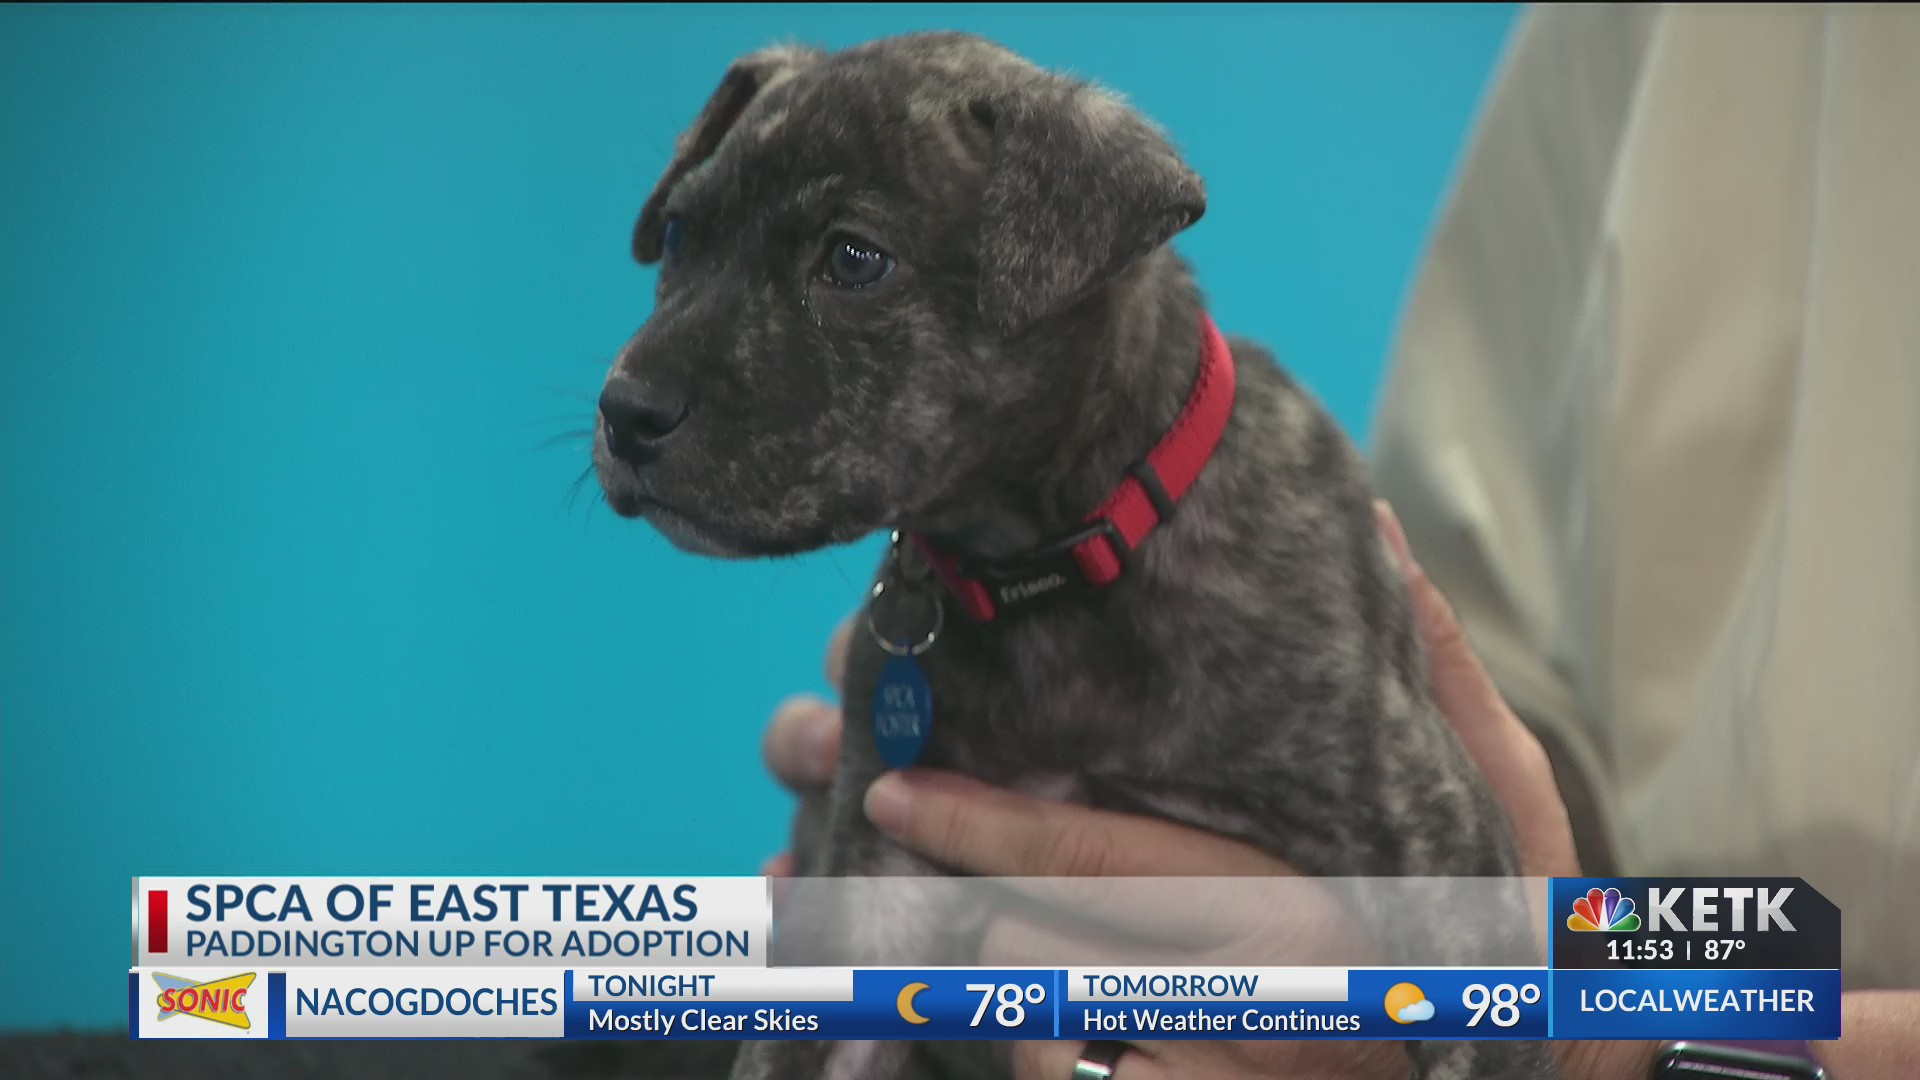 SPCA of East Texas comes by to show off a new furry friend